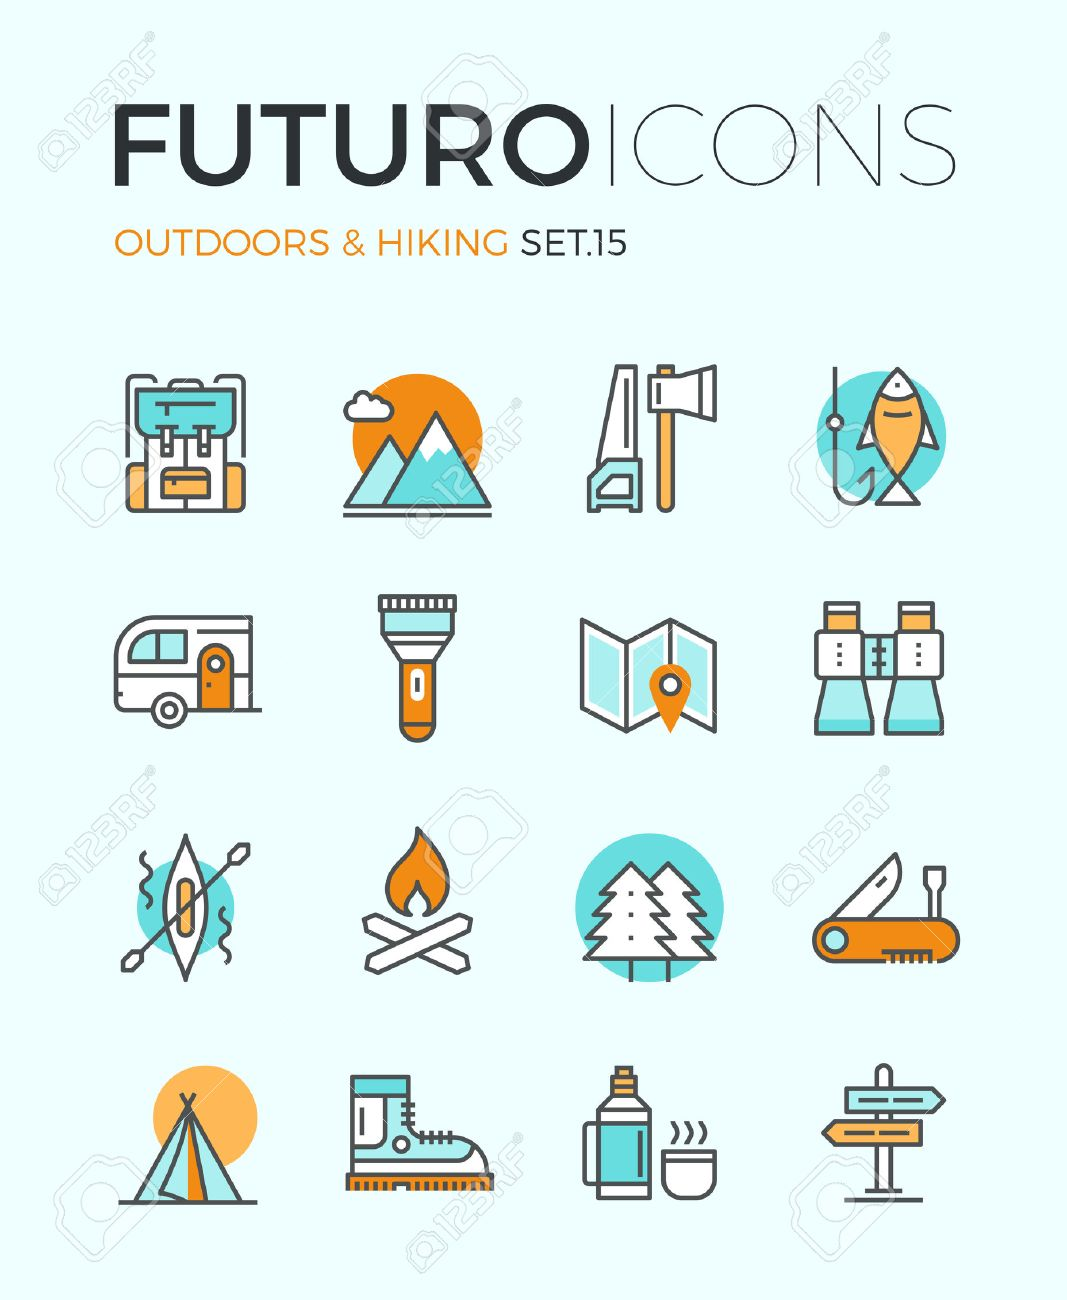 Line icons with flat design elements of camping equipment, hiking activity, outdoors adventure, mountain climbing, recreation tourism. Modern infographic vector logo pictogram collection concept. - 39558661